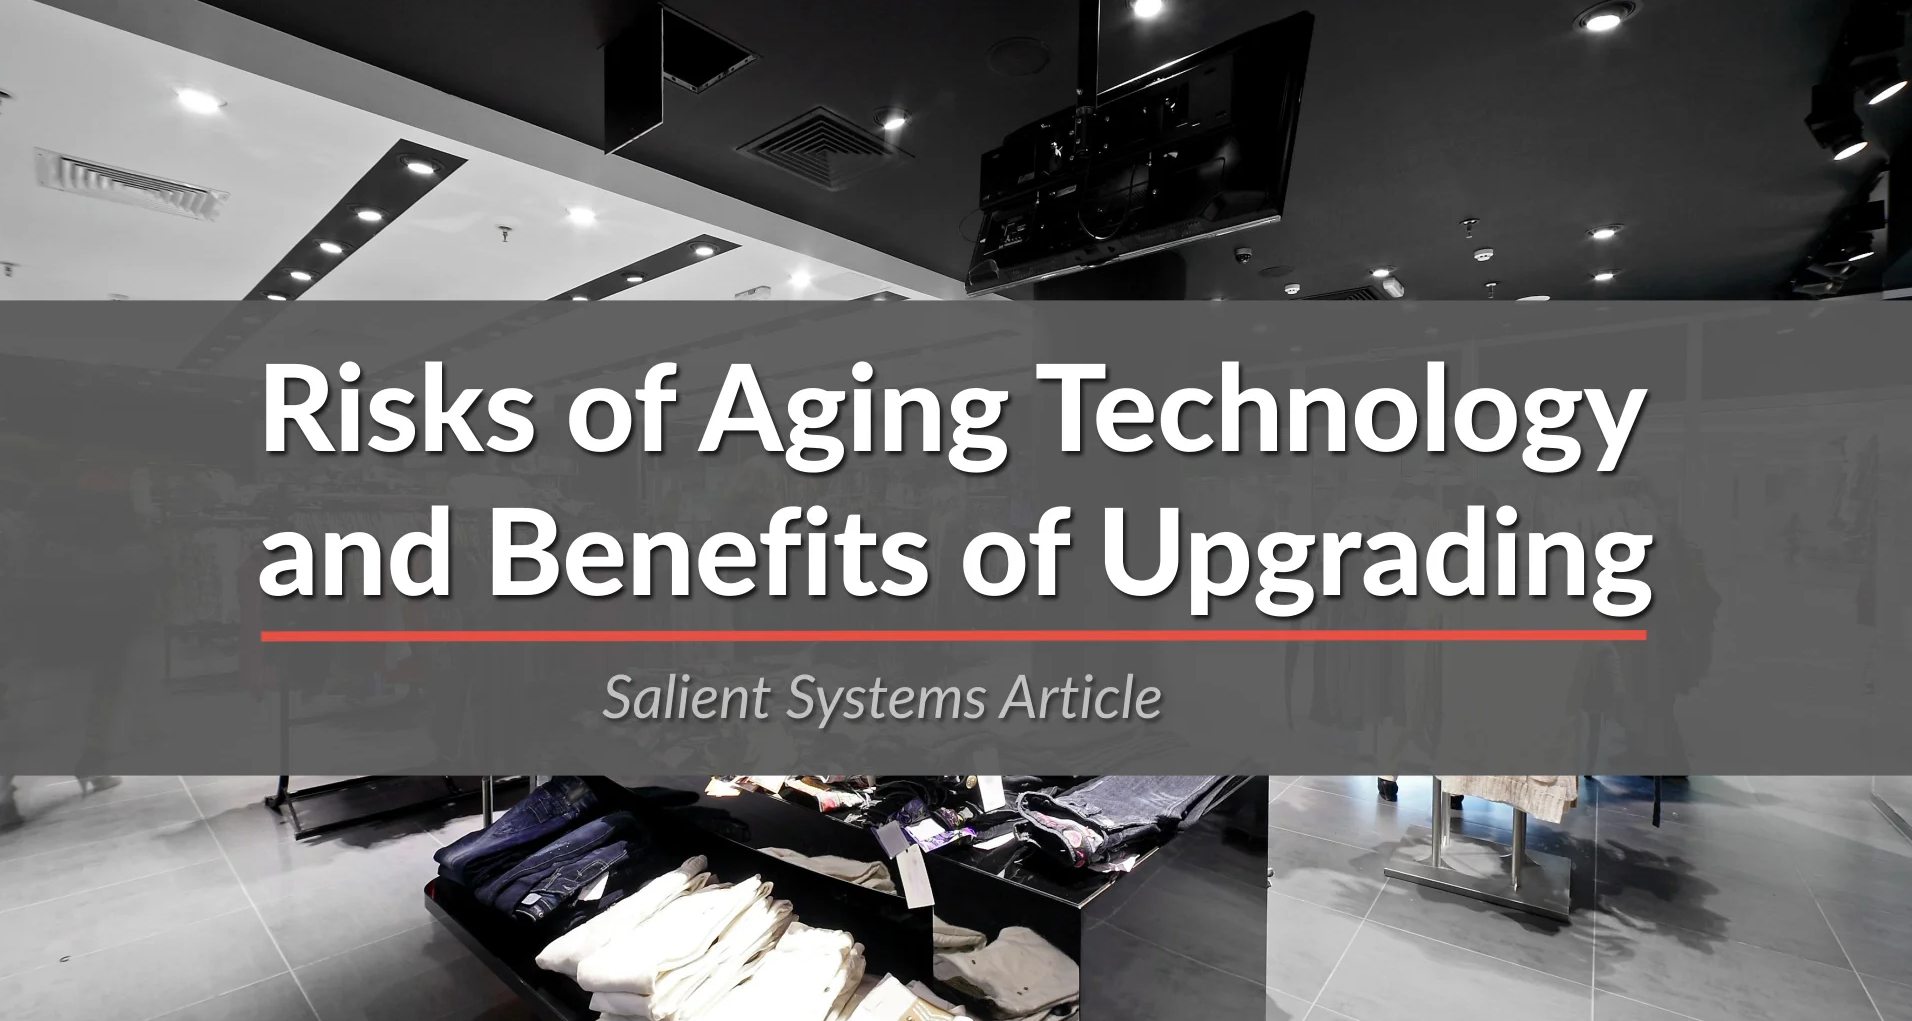 poster image for Risks of Aging Technology and Benefits of Upgrading video